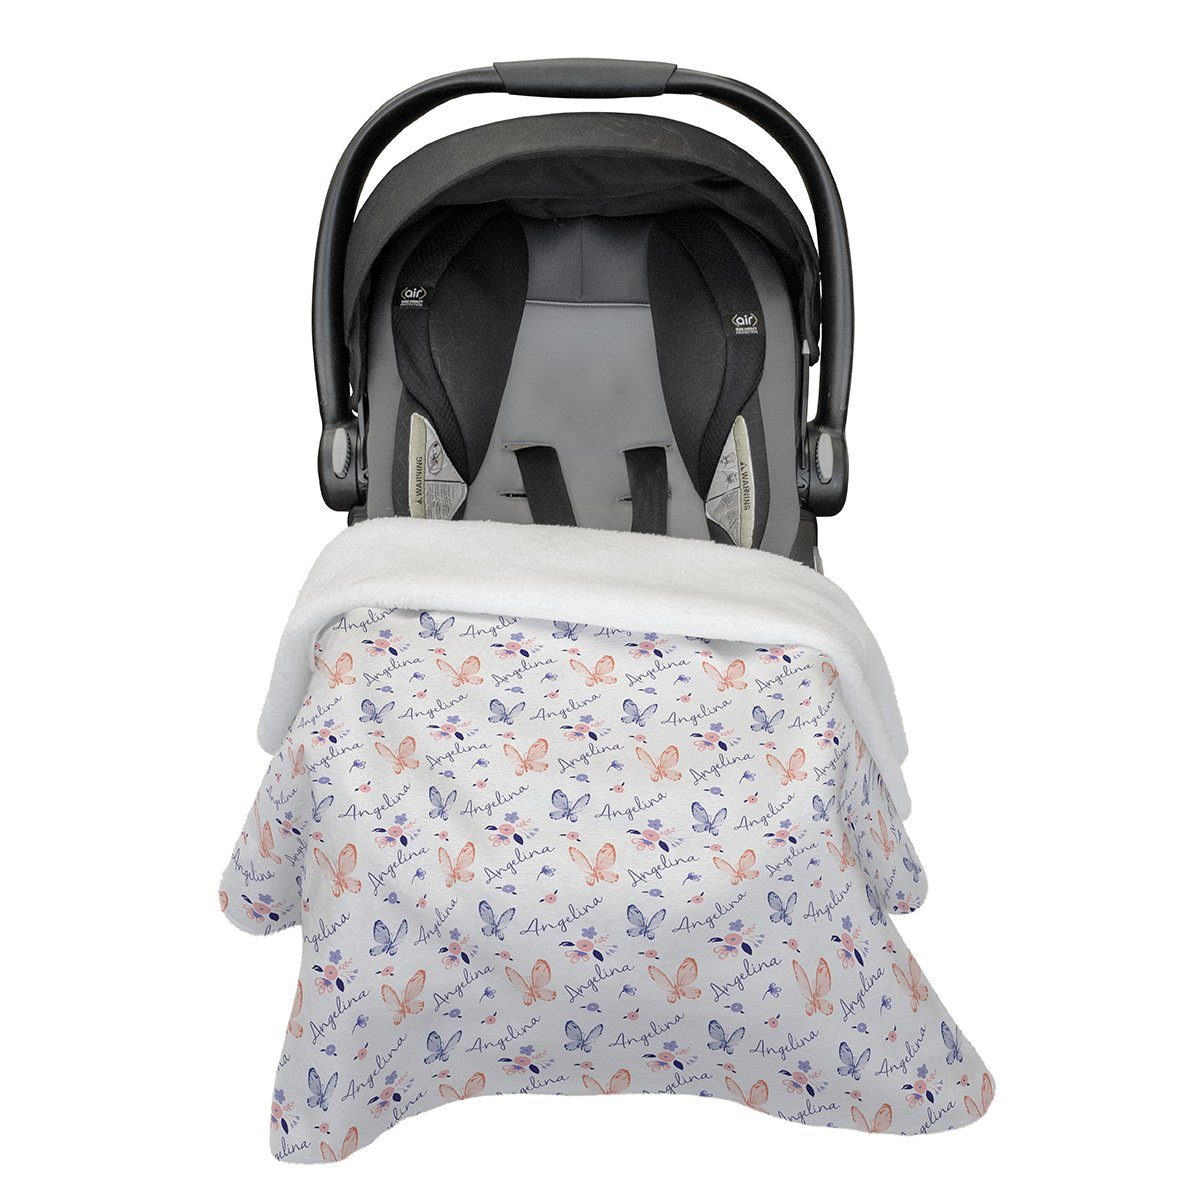 Angelina's Summer Butterfly | Car Seat Blanket